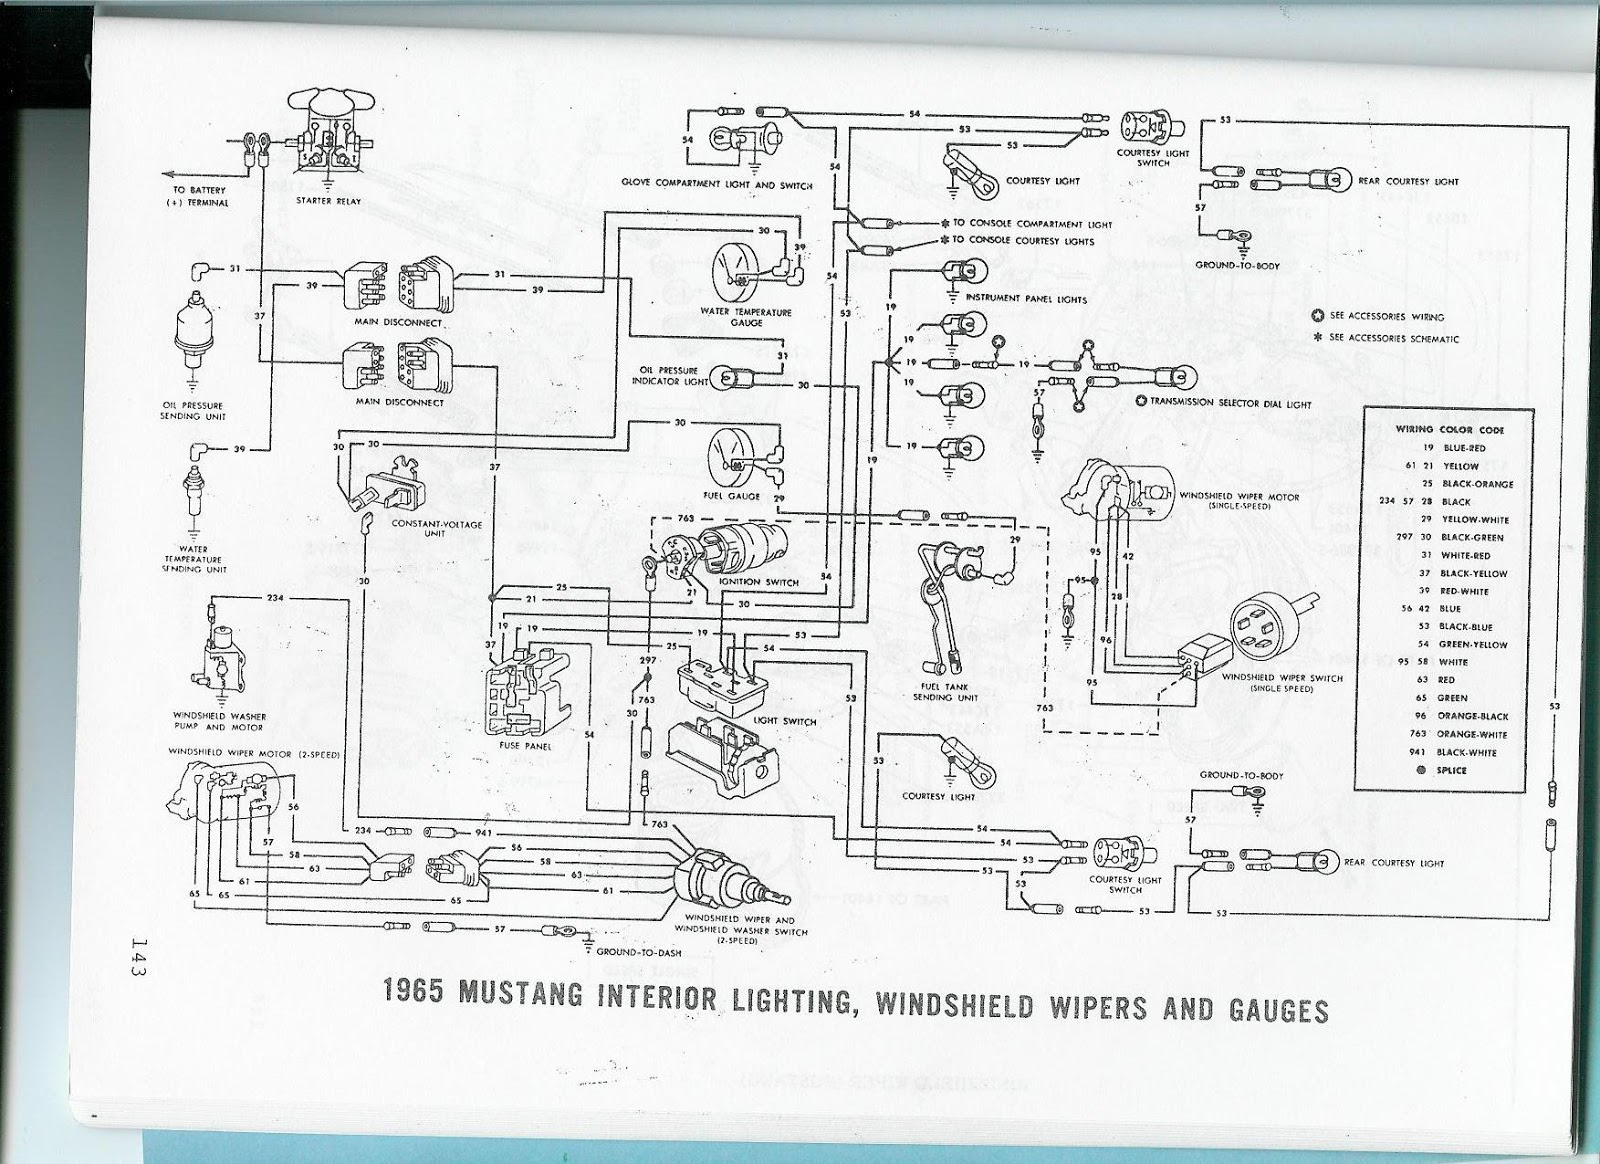 wiring diagram for 1965 ford mustang the wiring diagram the care and feeding of ponies 1965 mustang wiring diagrams wiring diagram